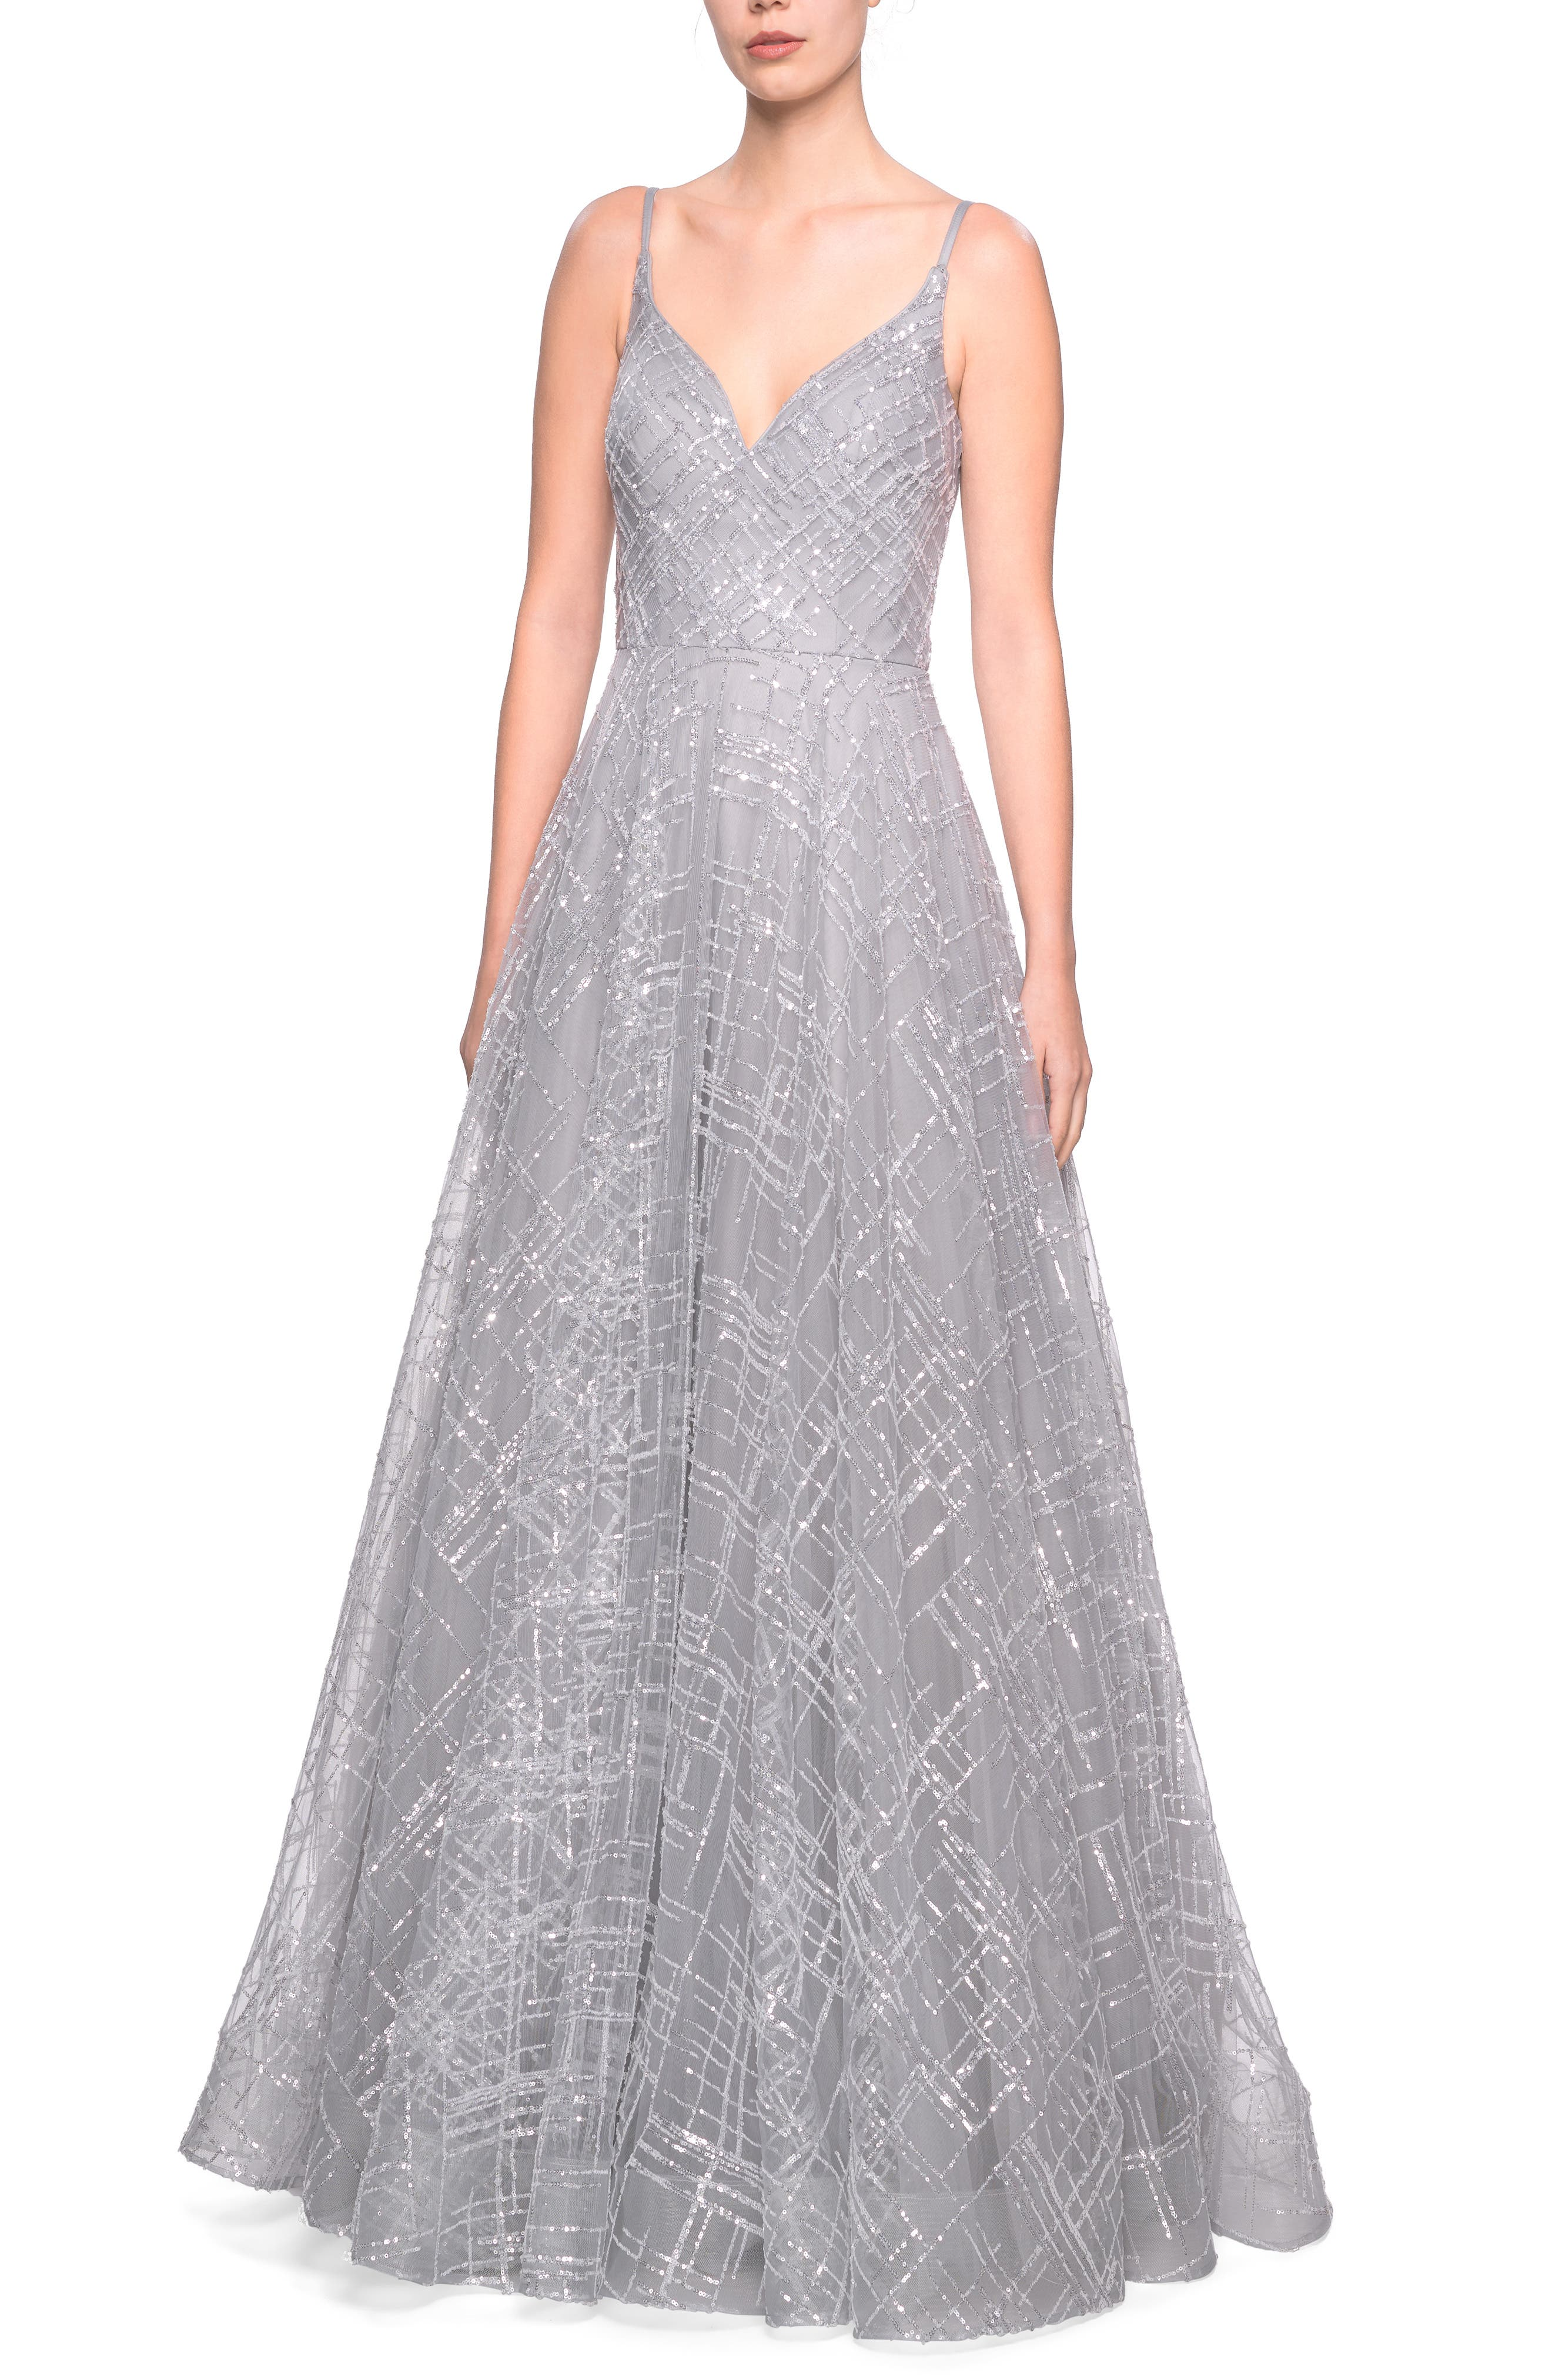 La Femme Sequin Evening Dress, Grey